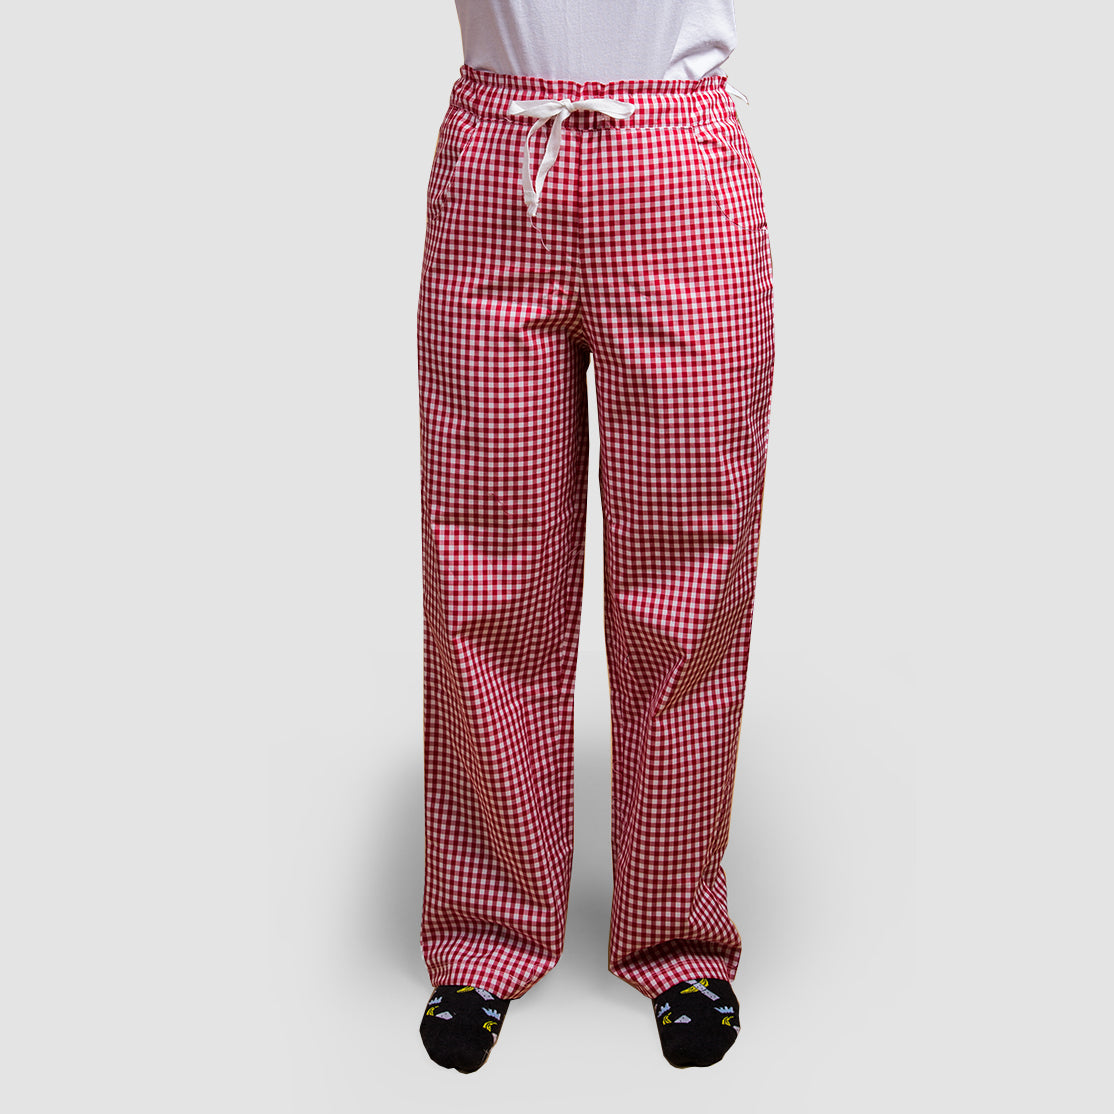 Ruby Red Homepants